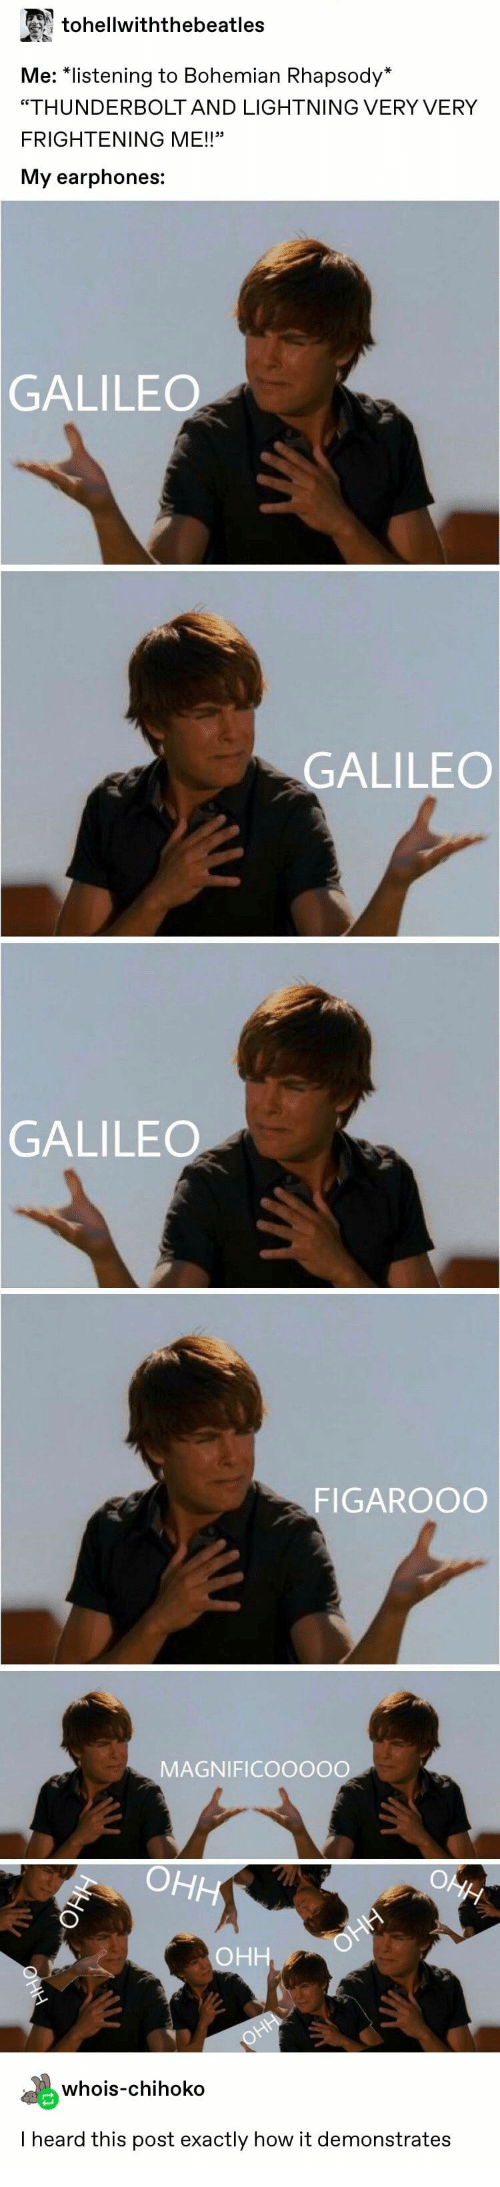 "galileo: tohellwiththebeatles  Me: ""istening to Bohemian Rhapsody  ""THUNDERBOLT AND LIGHTNING VERY VERY  FRIGHTENING ME!!""  My earphones:  GALILEO  GALILEO  GALILEO  FIGAROOO  MAGNIFICOOOOO  whois-chihoko  I heard this post exactly how it demonstrates"